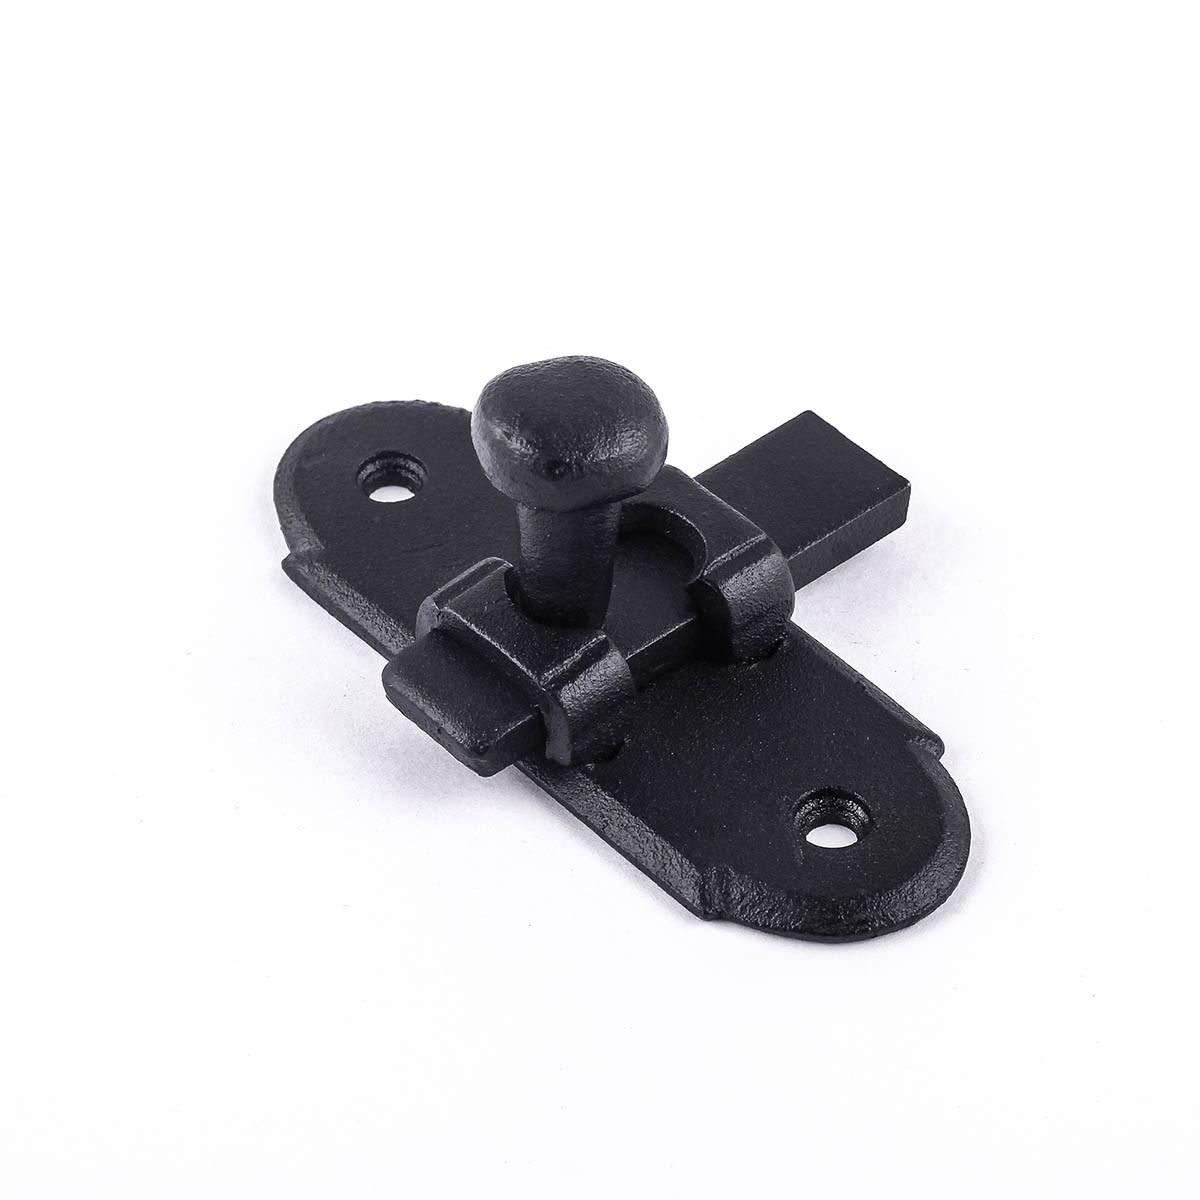 Black Classic Slide Style Wrought Iron Cabinet Latch 3H x 1.25W Cabinet Latch Wrought Iron Cabinet Latch Antique Black Cabinet Latch